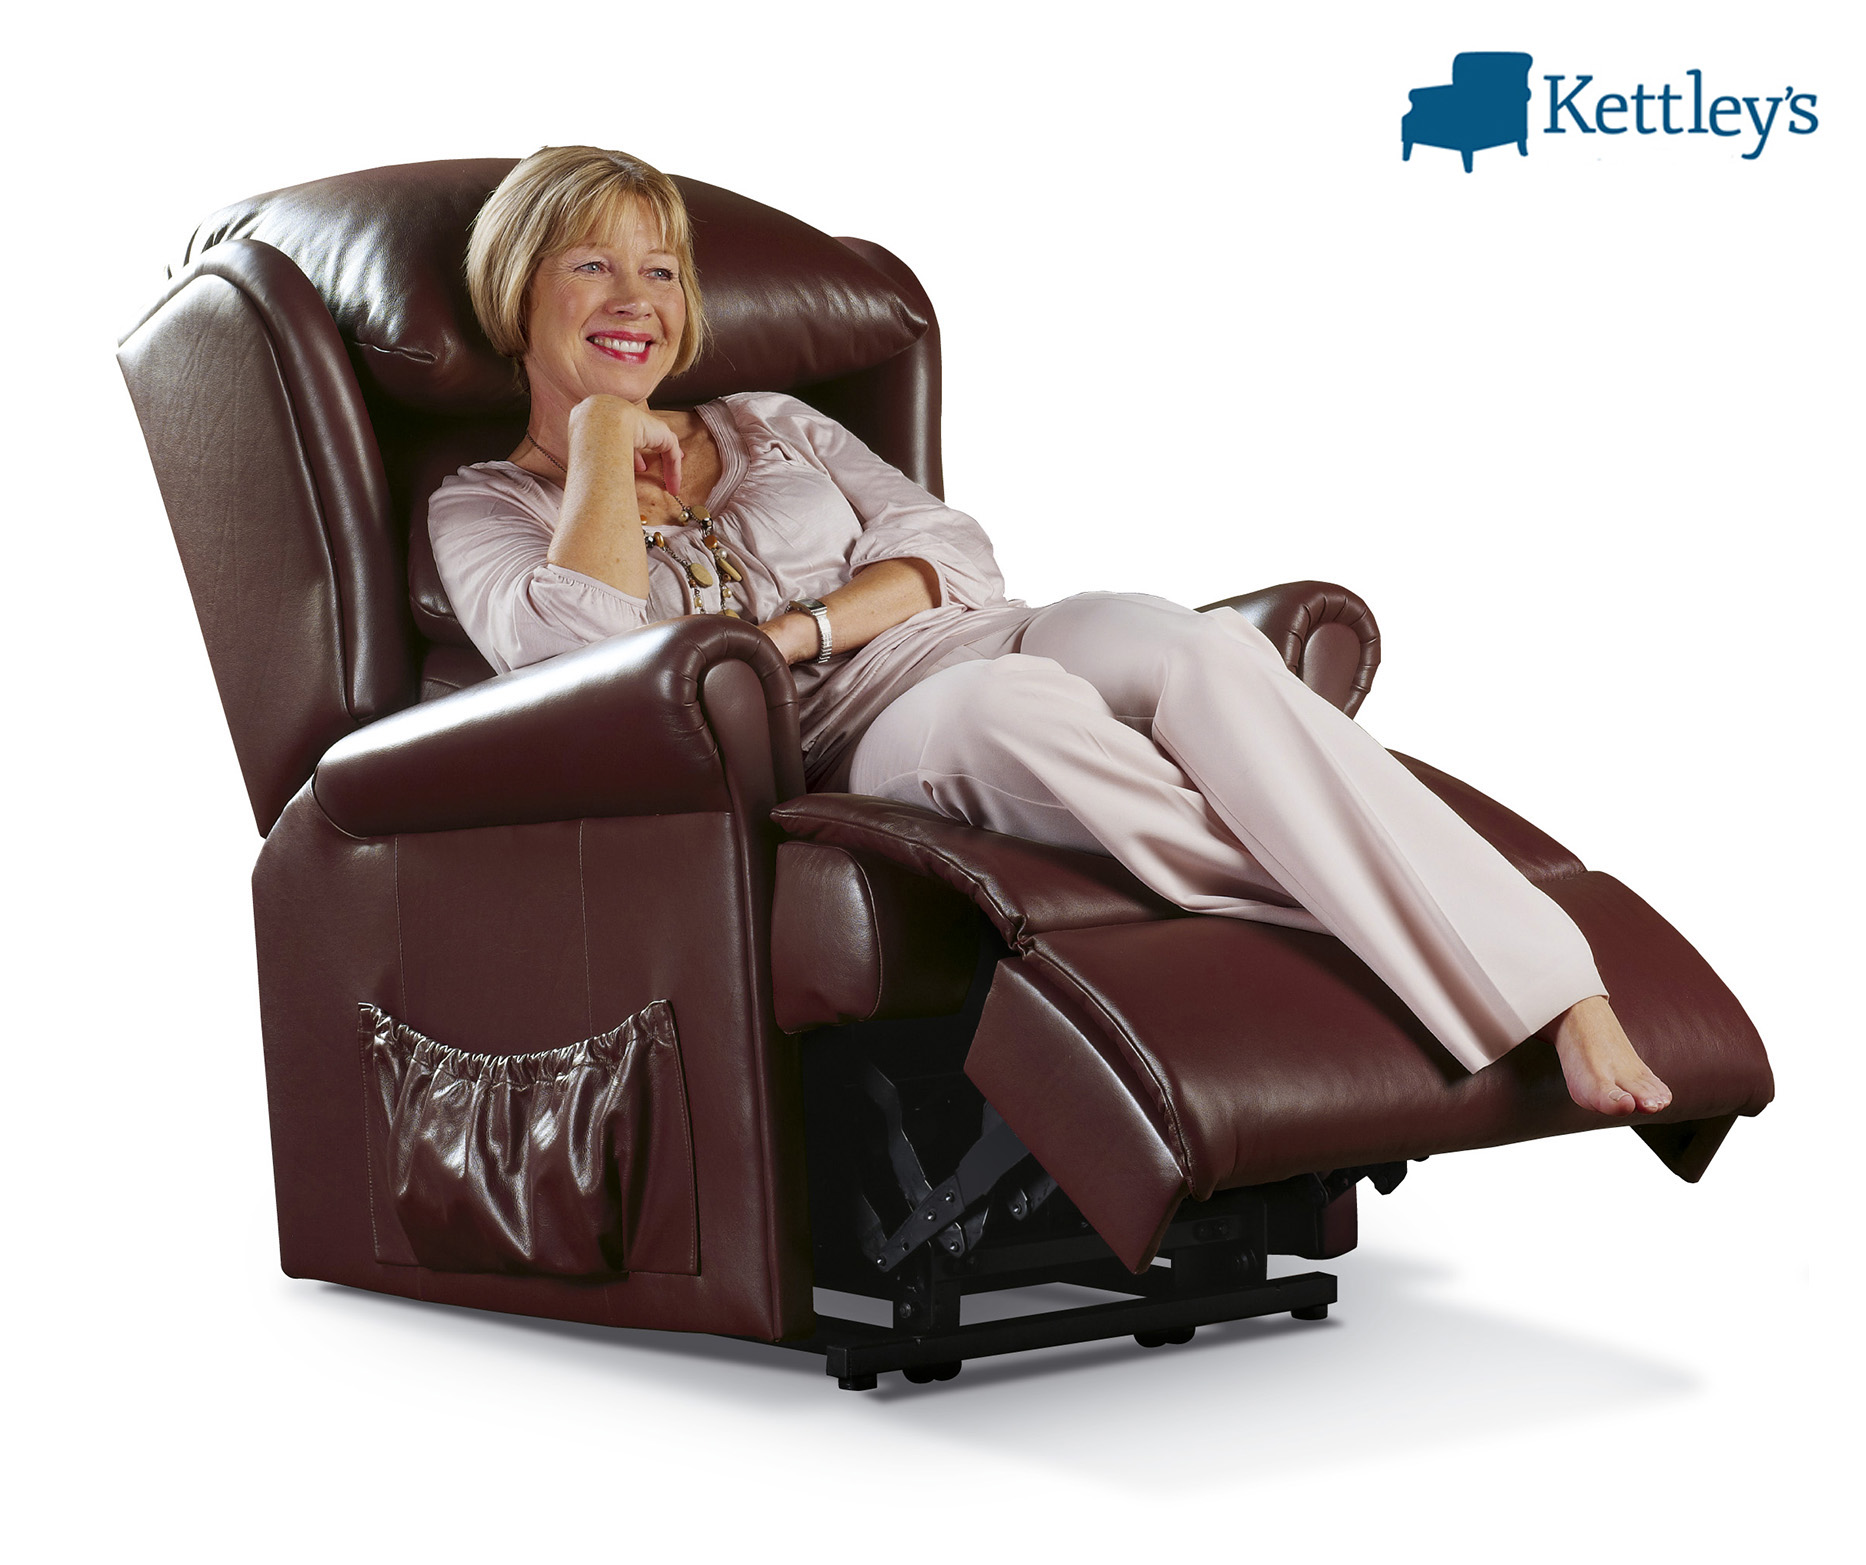 Available Options  sc 1 st  Kettleyu0027s Furniture & Sherborne Windsor Riser Recliner | Powerlift Recliners | Kettleyu0027s ... islam-shia.org